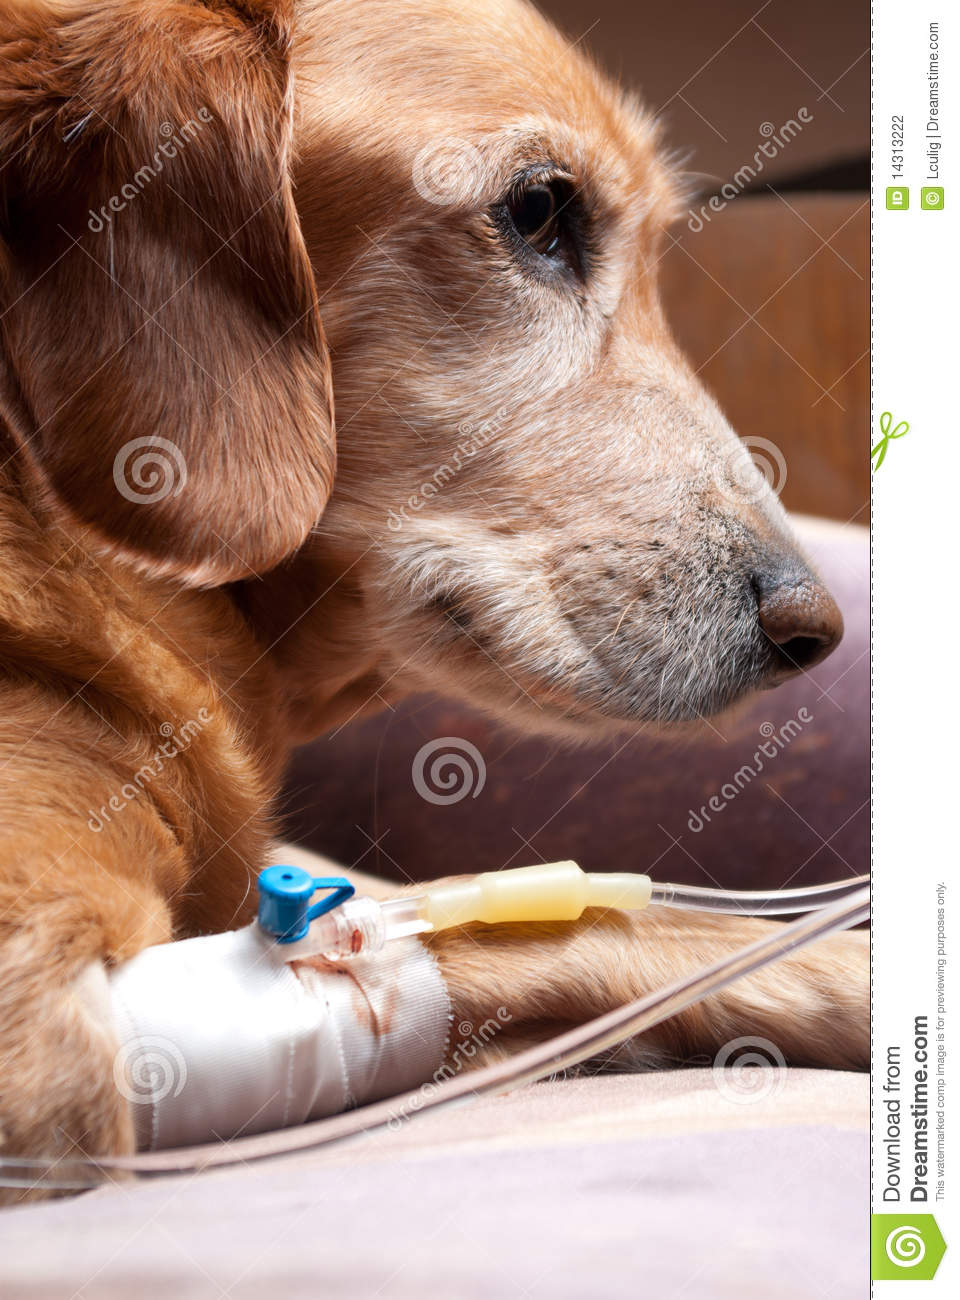 Dog Recovering With Cannula Intravenous Therapy Stock